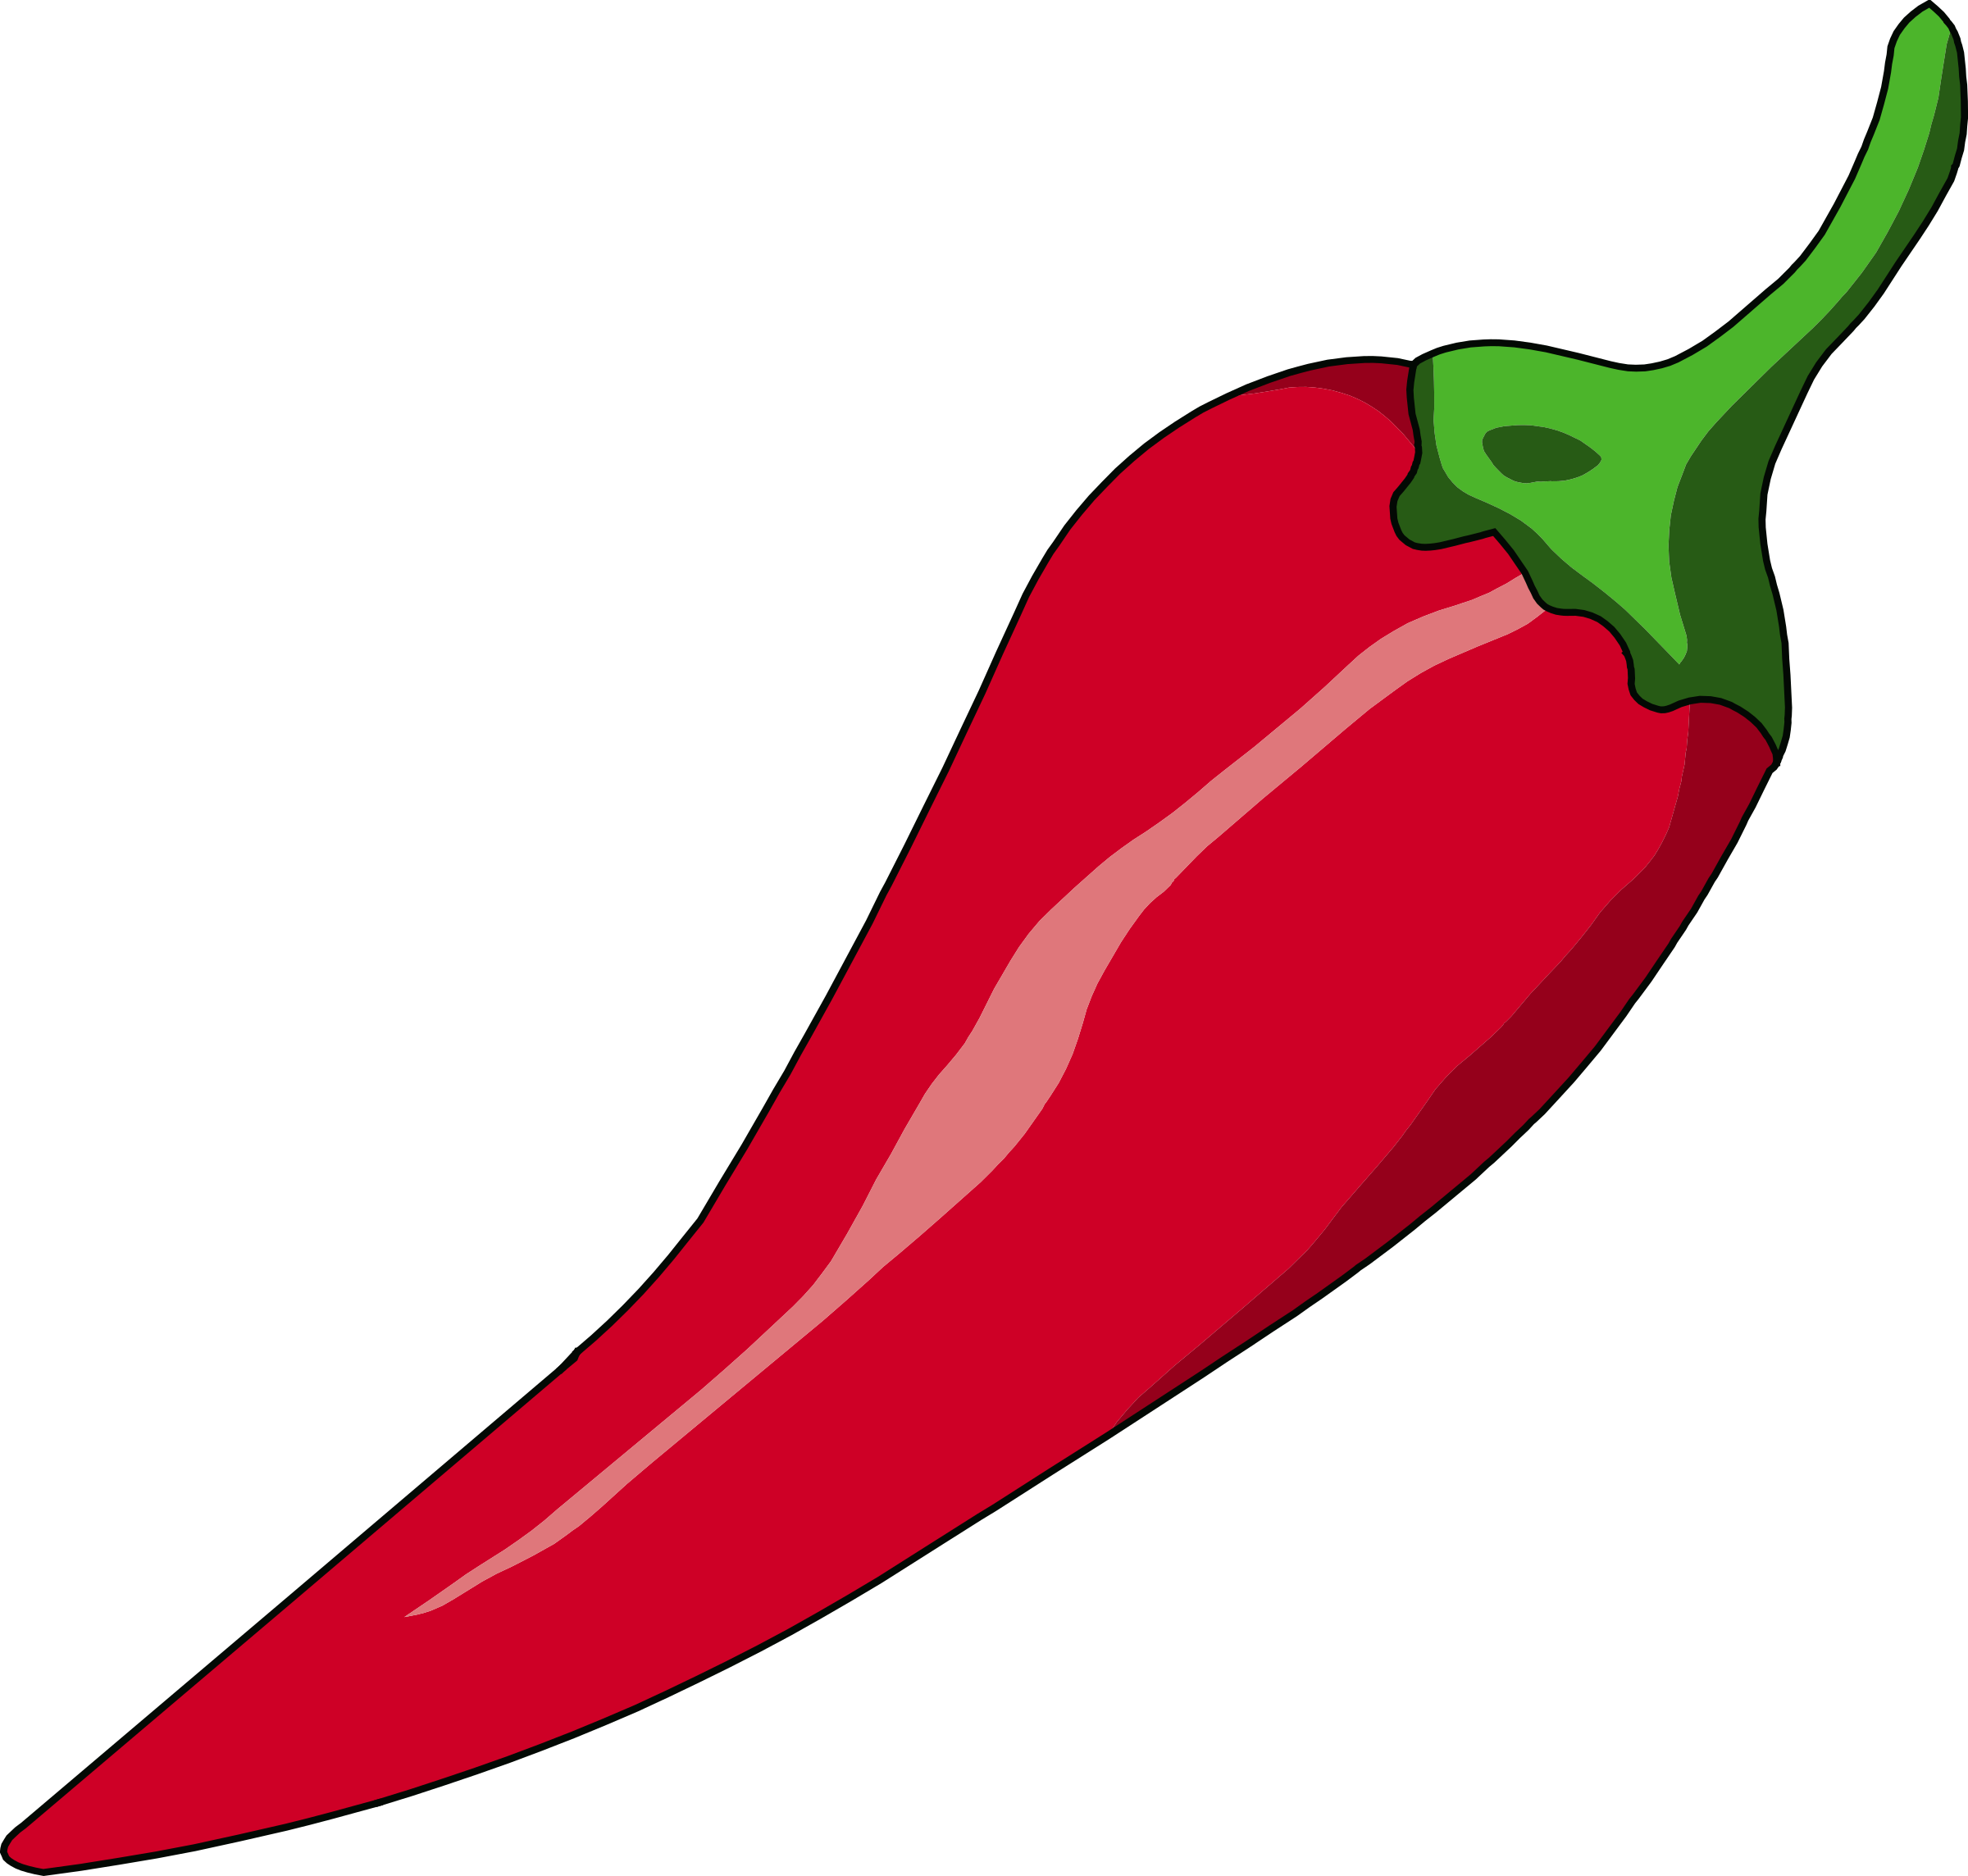 Big image png. 3 clipart chilli